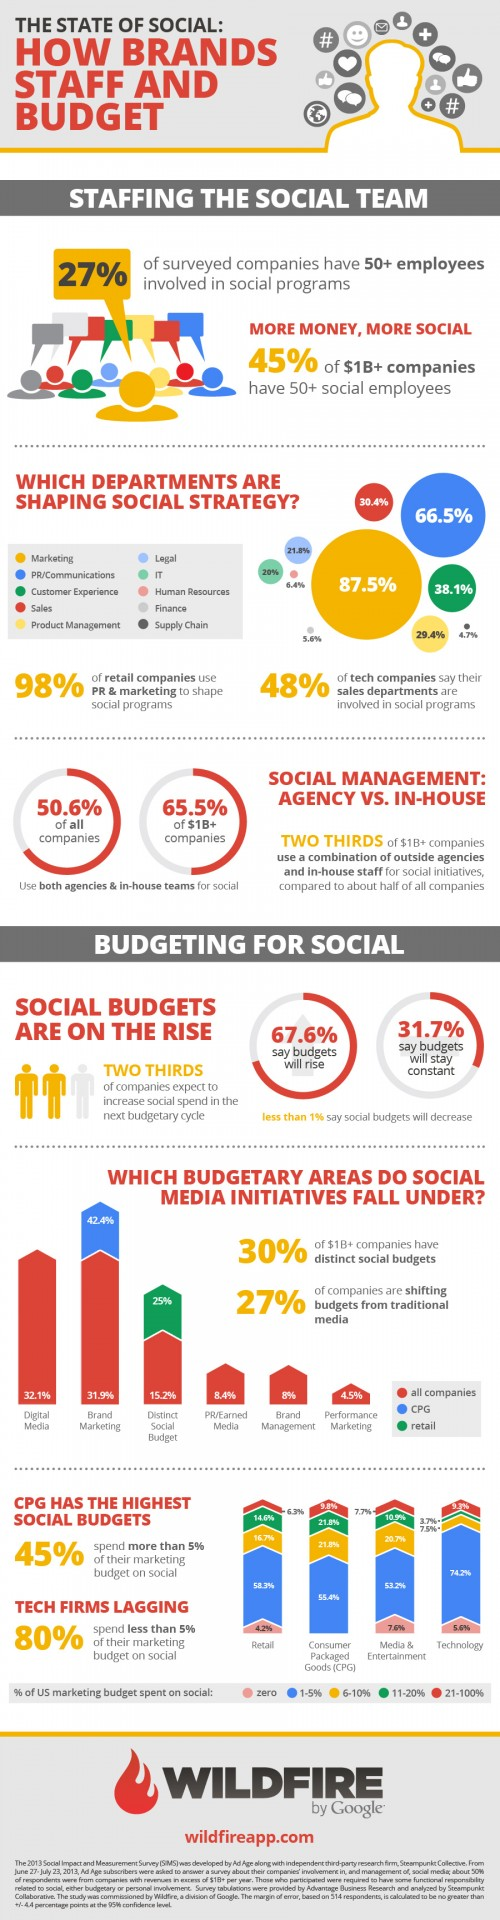 How Brands Staff And Budget Their Social Media (Infographic) - by ViralBlog.com